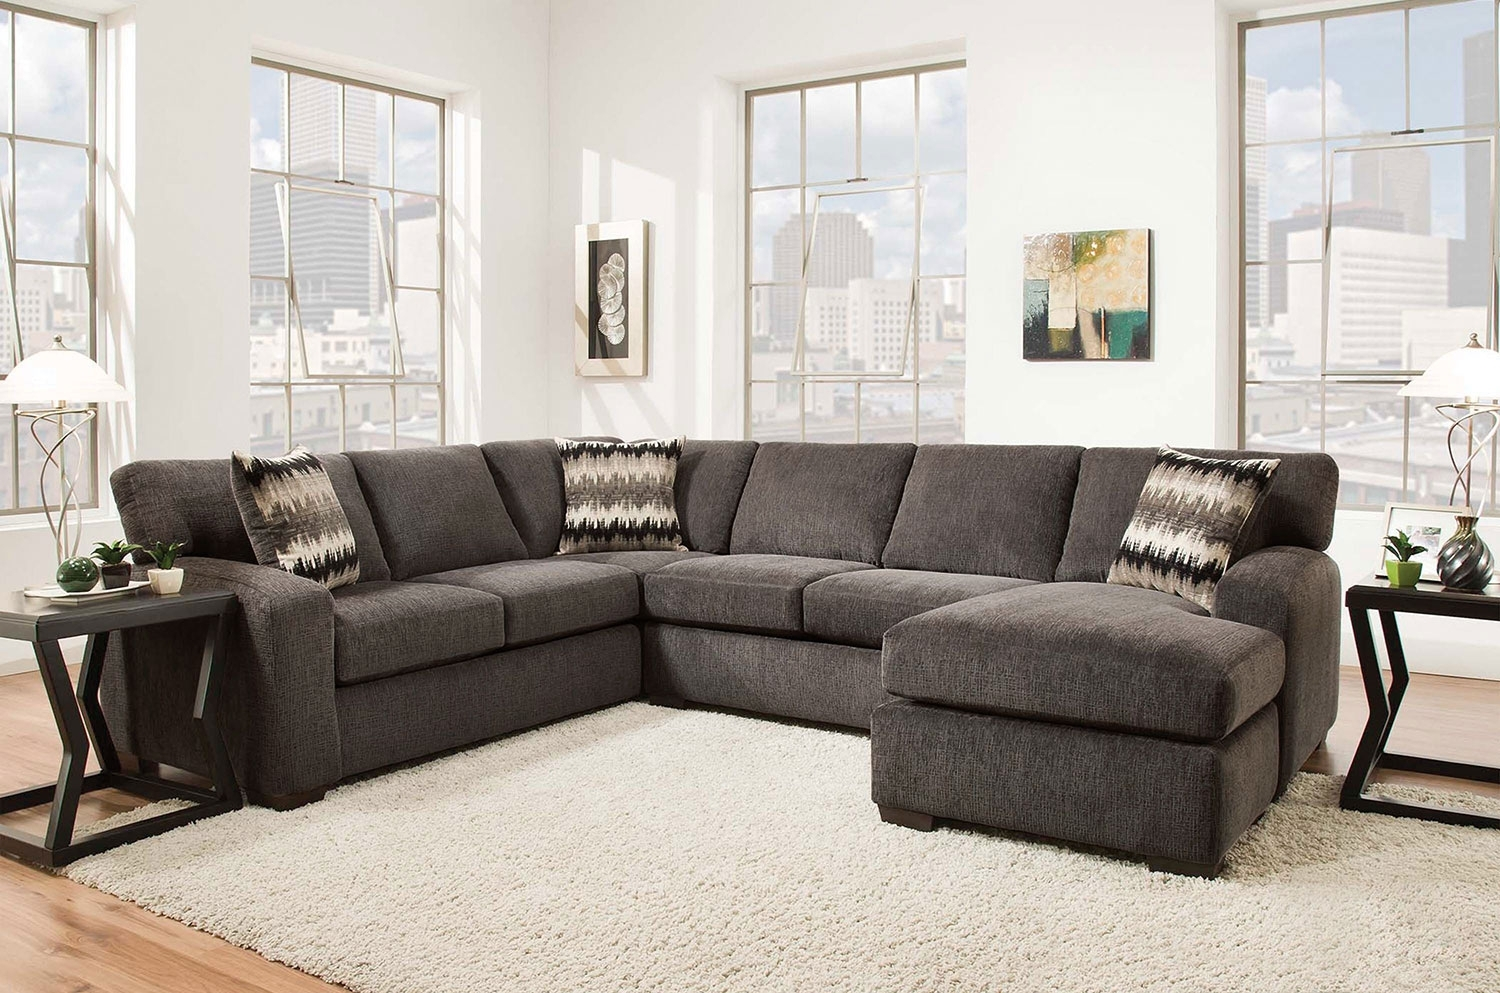 Fenella 2 Piece Right Facing Sectional – Smoke | Levin Furniture For Sectional Sofas With Ottoman (View 7 of 15)